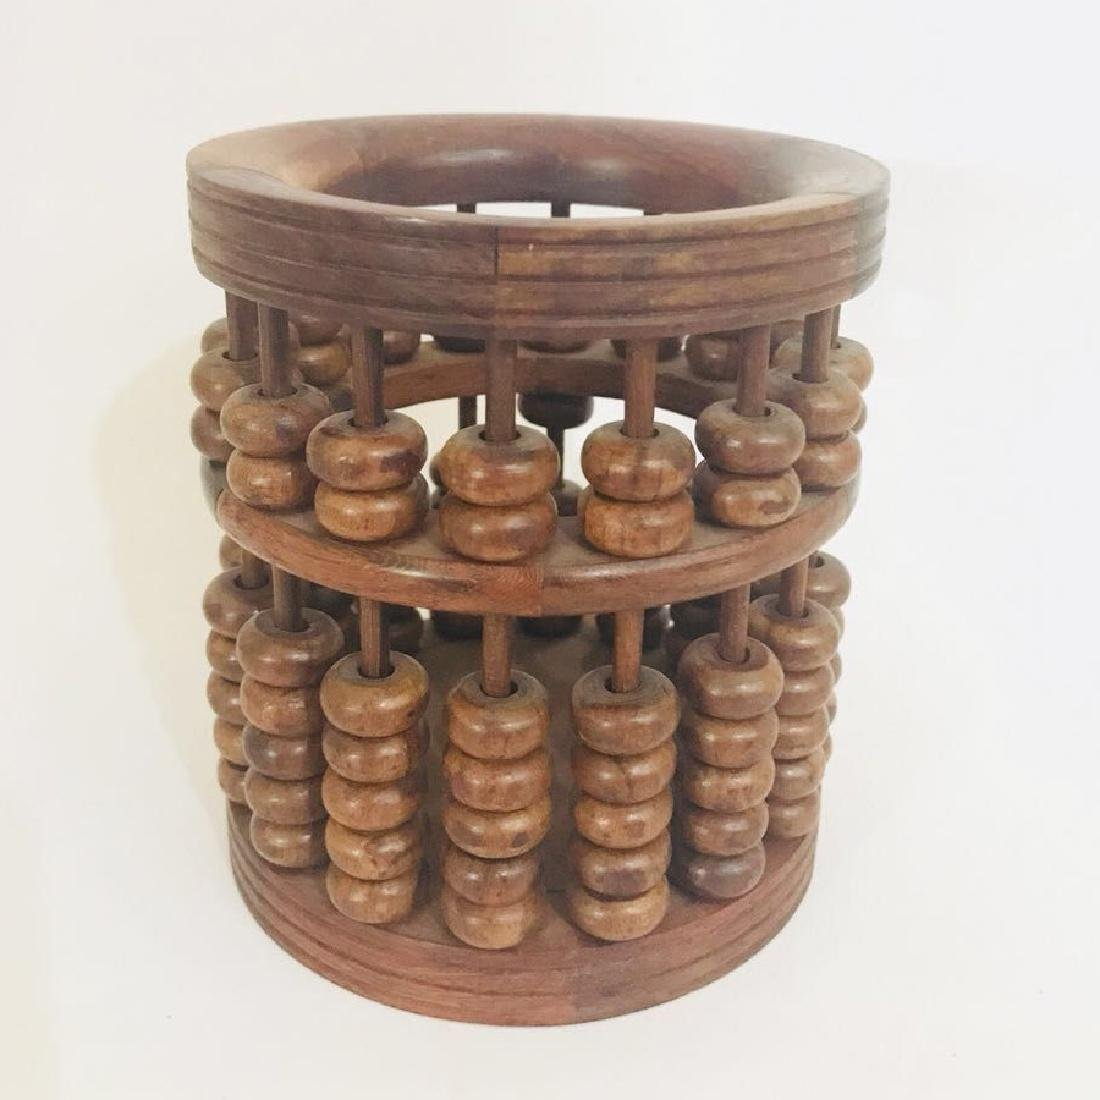 Rounded Abacus